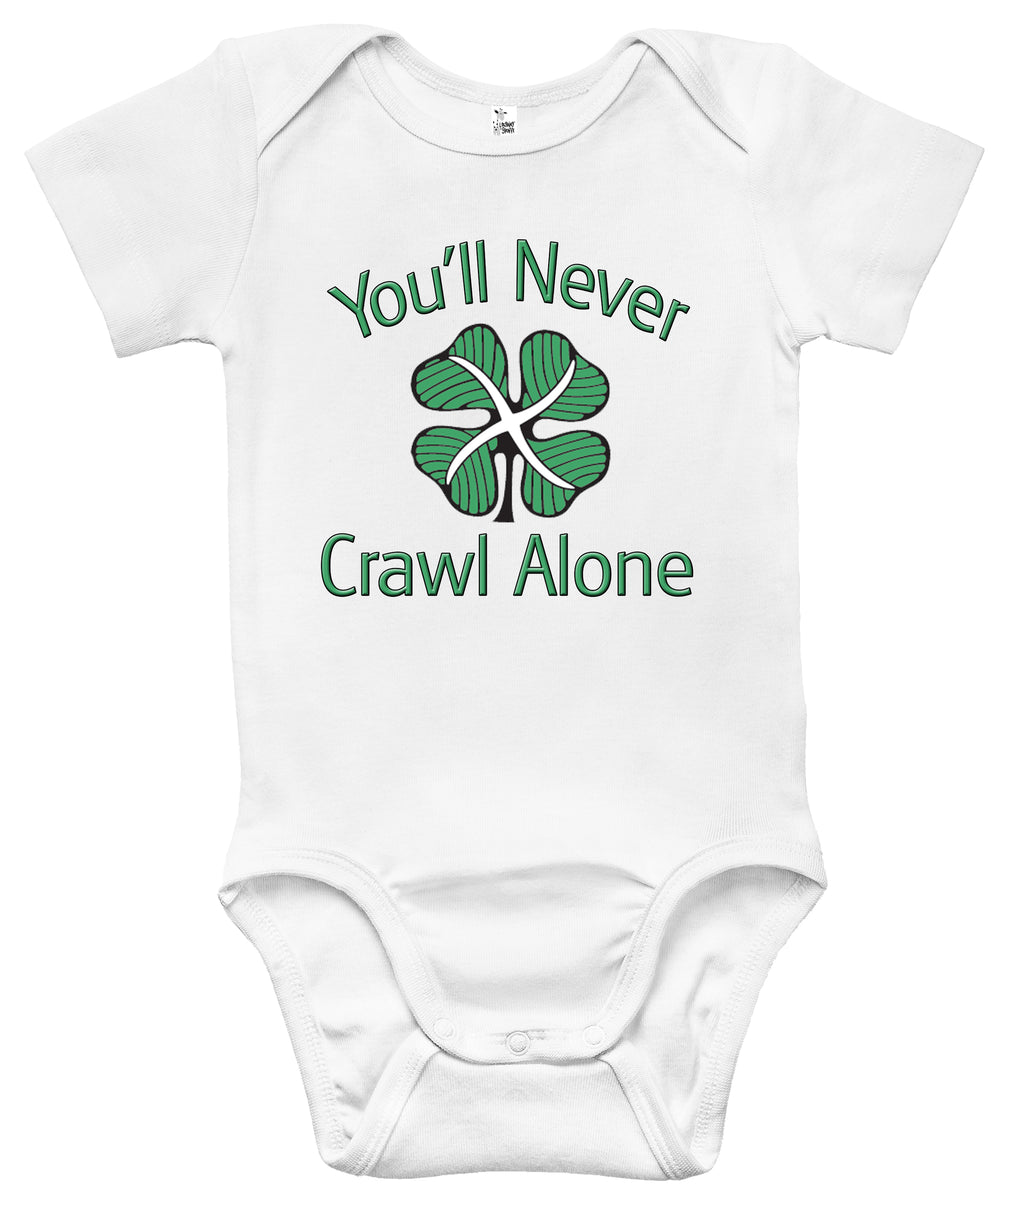 Baby Bodysuit - Celtic FC - You'll Never Crawl Alone